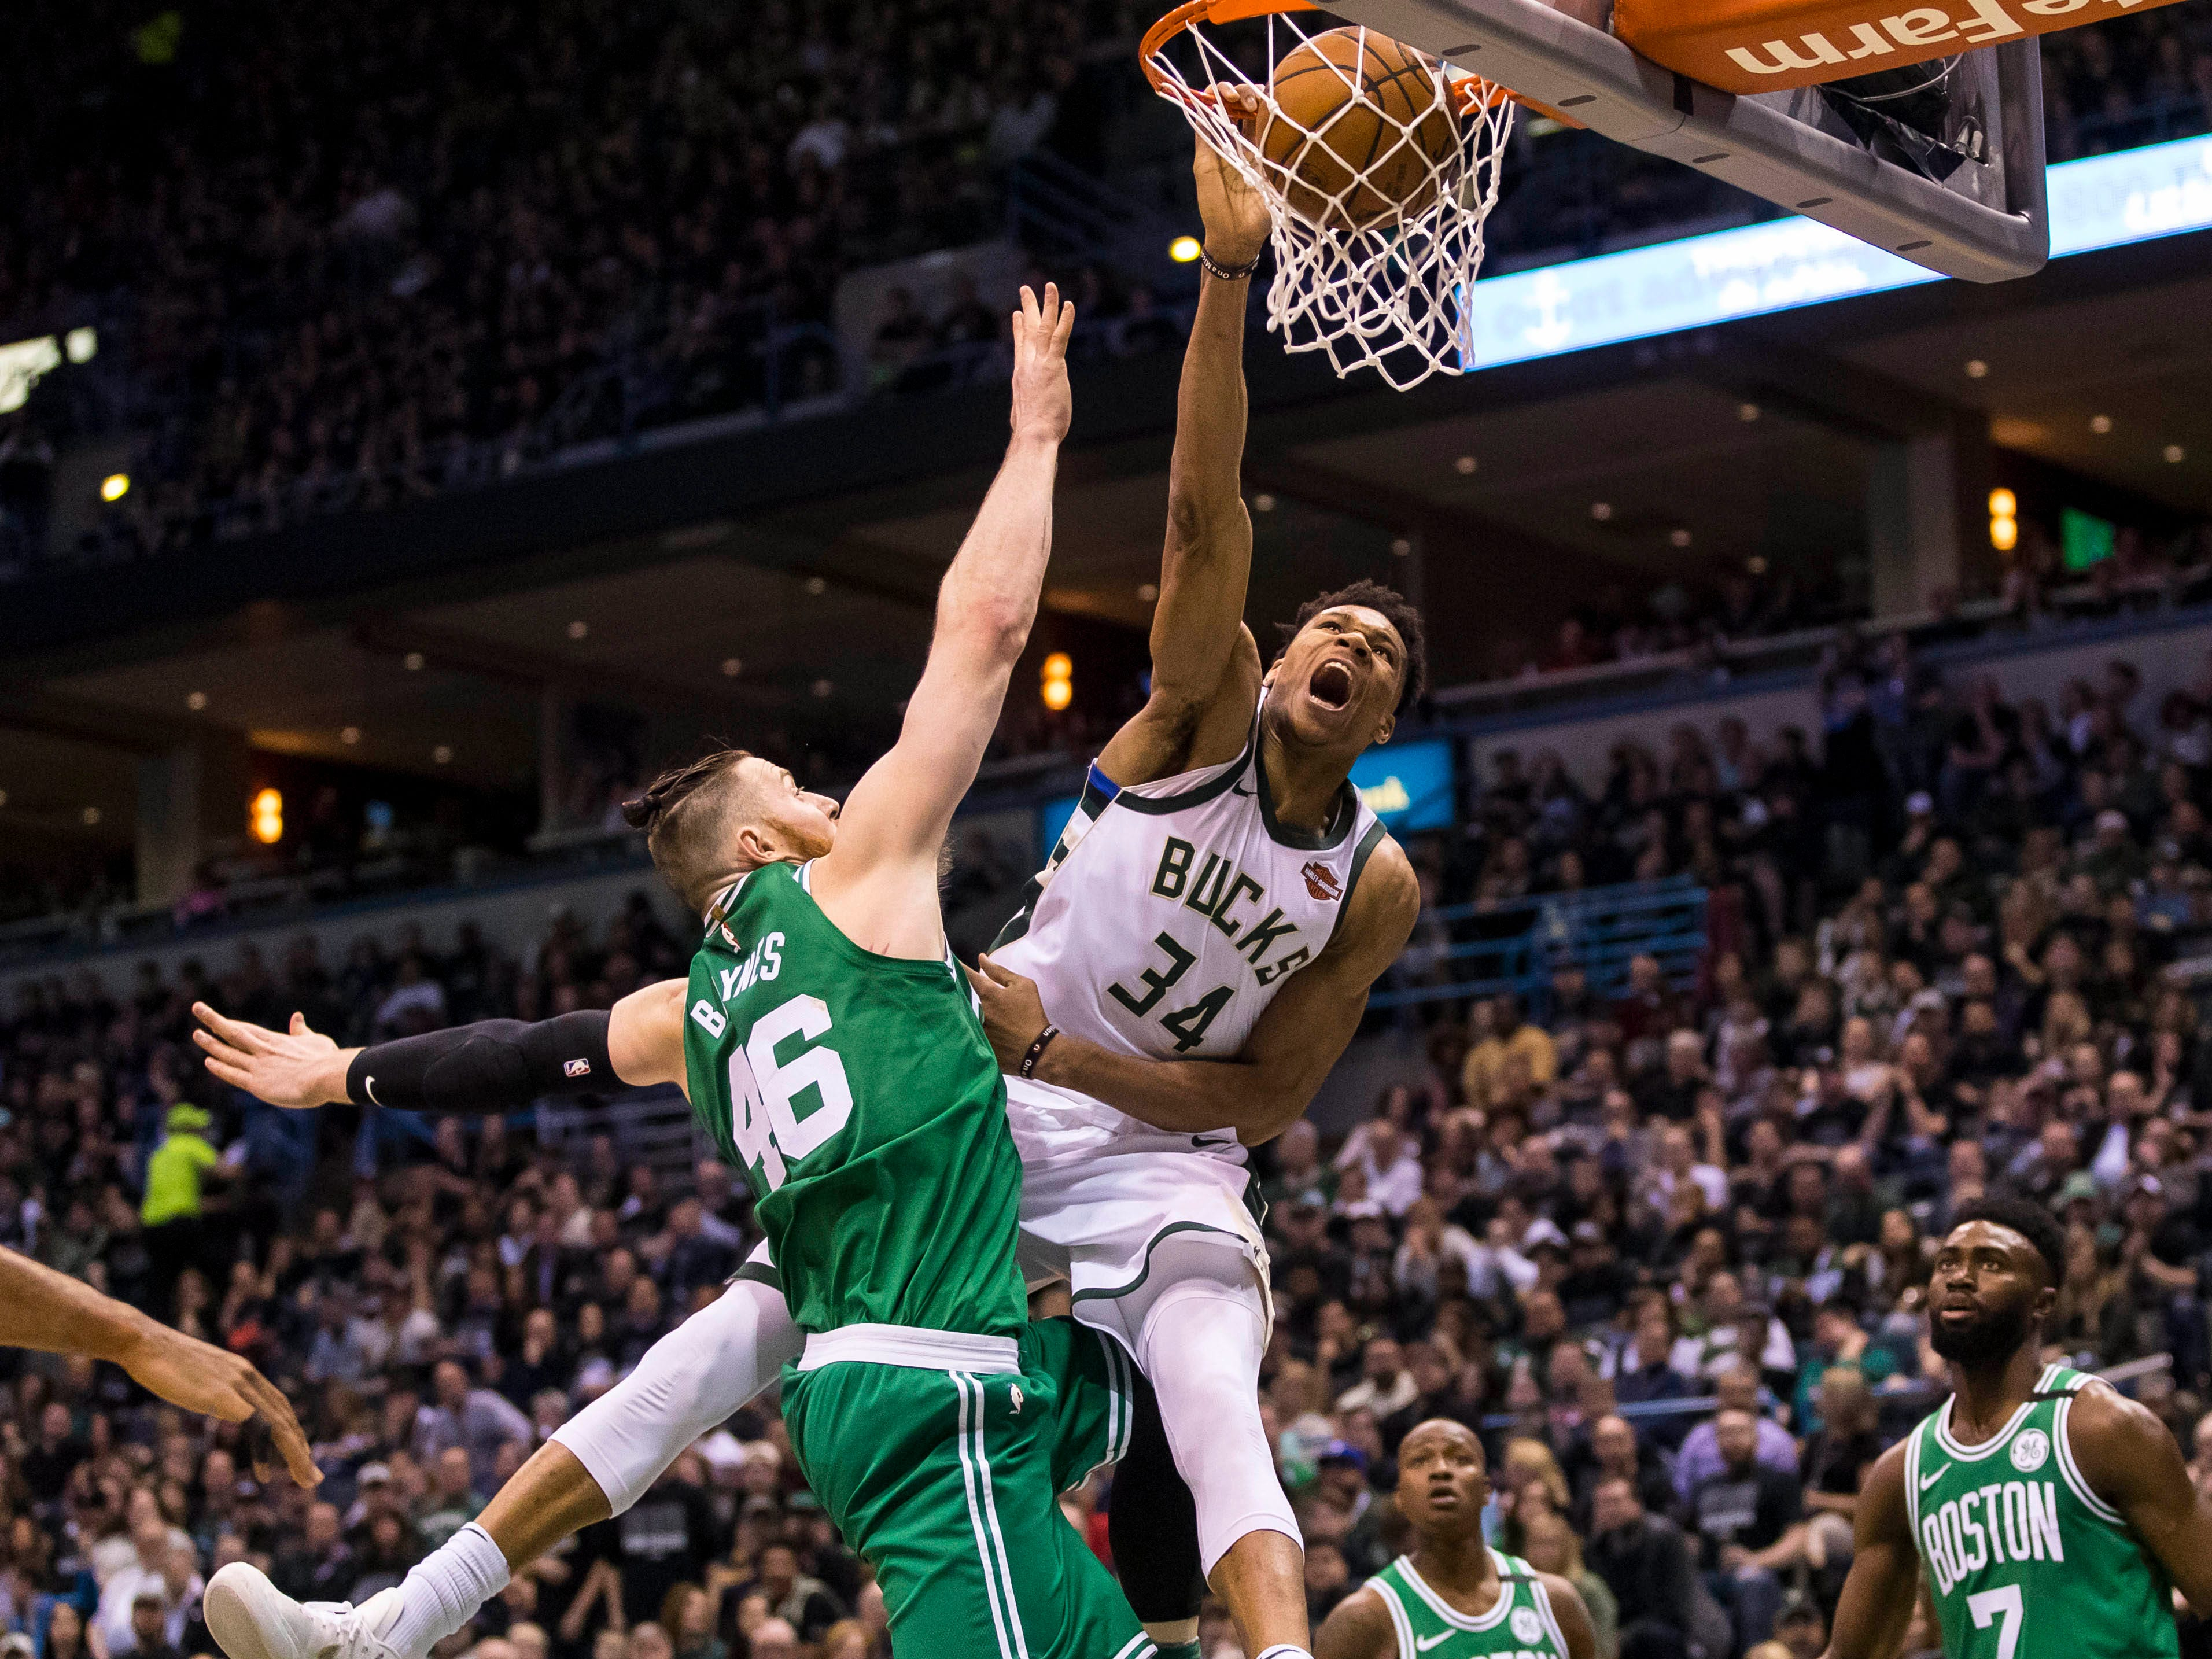 Antetokounmpo puts Boston defender Aron Baynes on a poster with a ferocious one-handed slam during the 2018 playoffs.